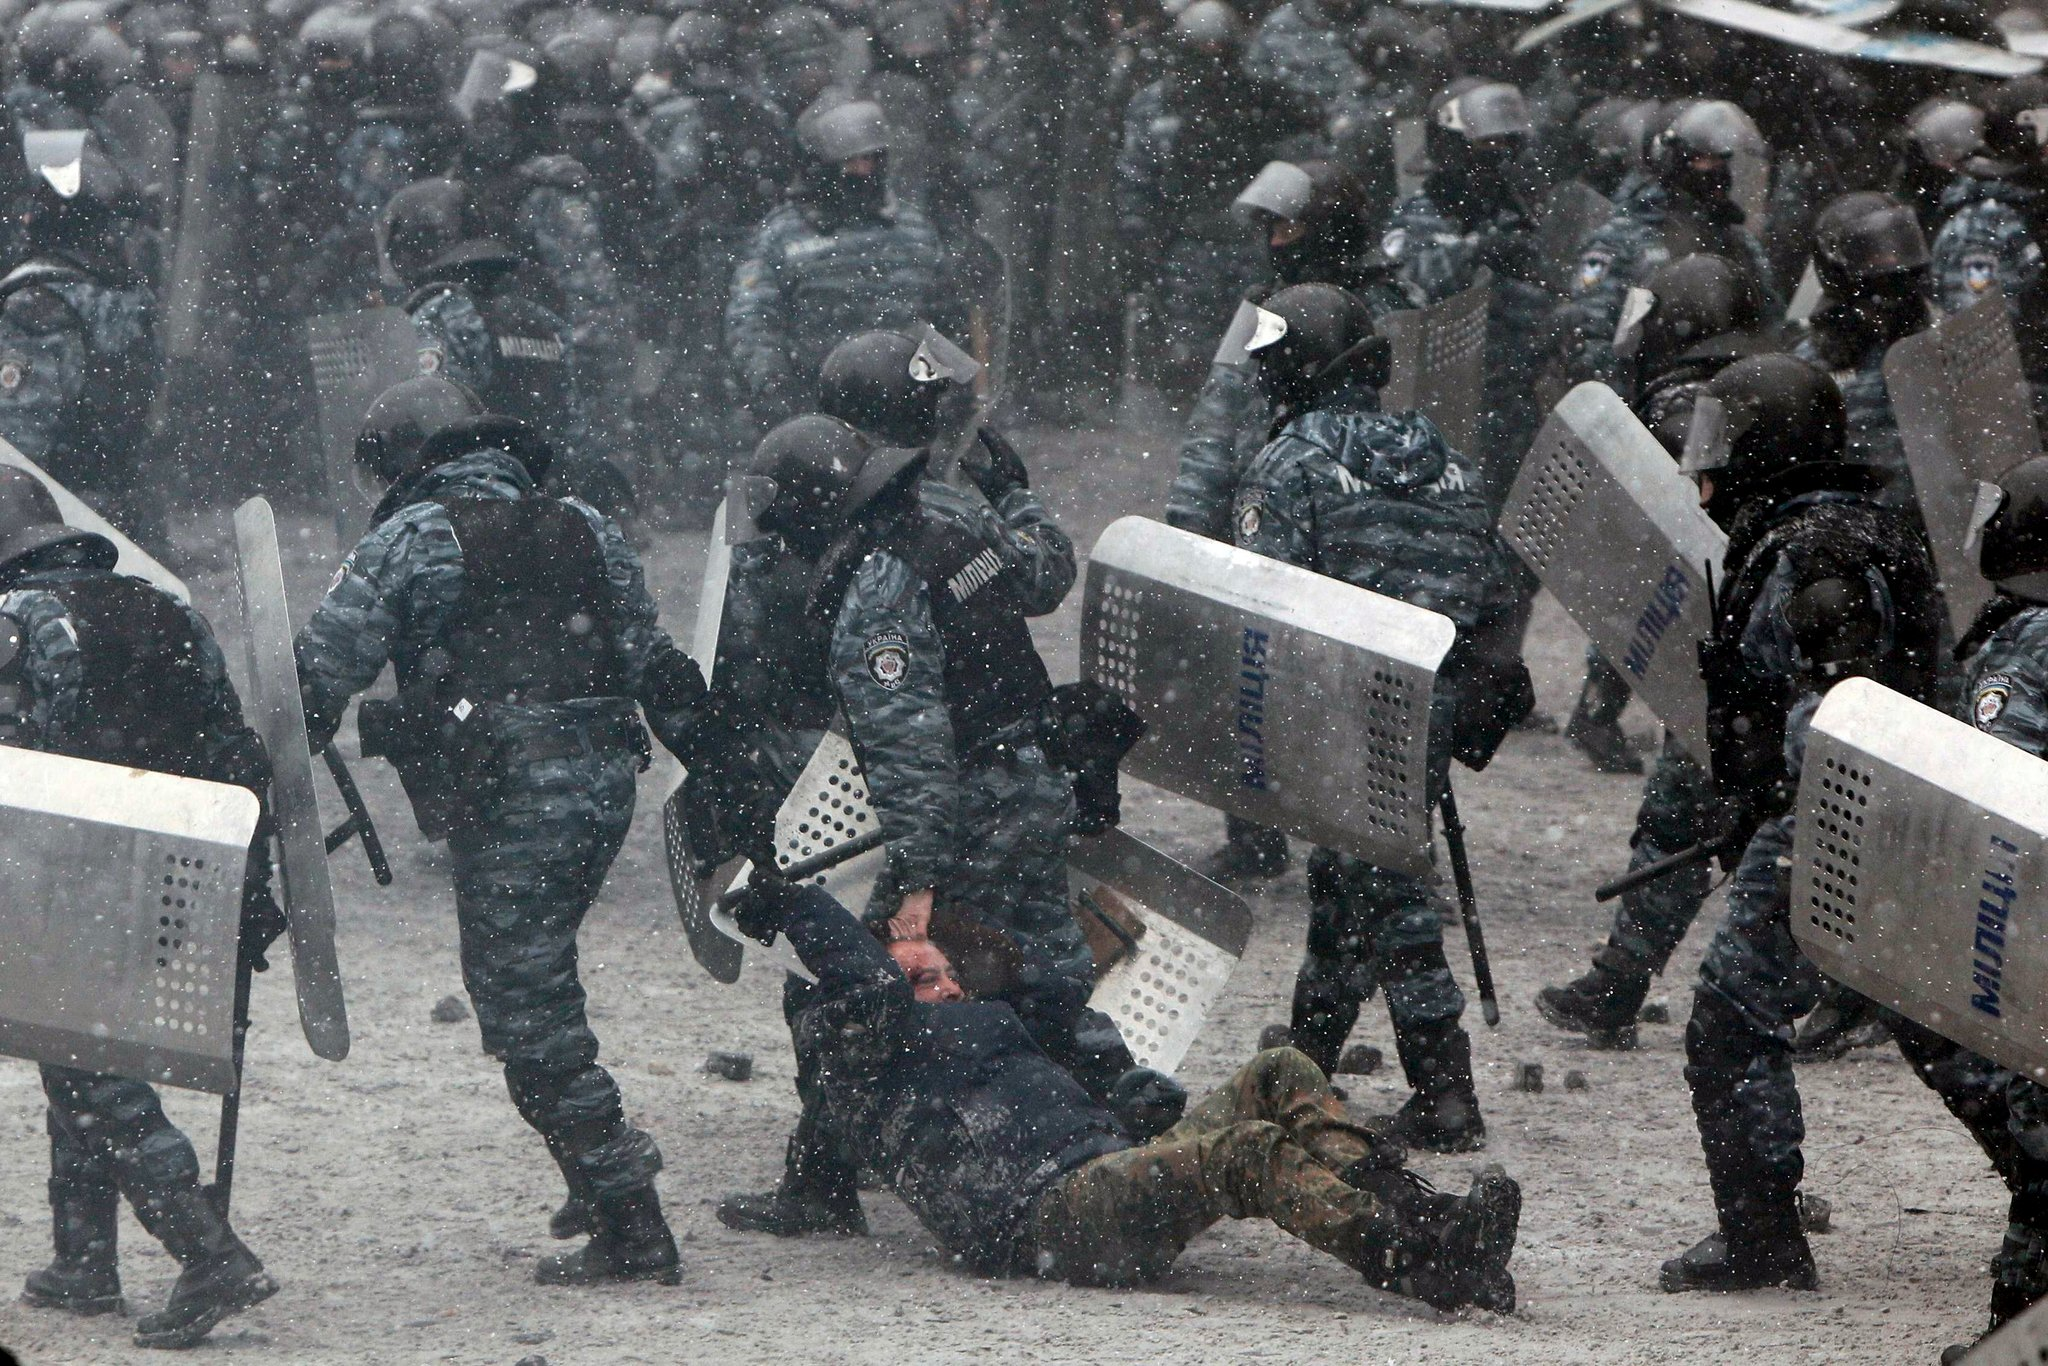 Police detained a man in Kiev during clashes with protesters.